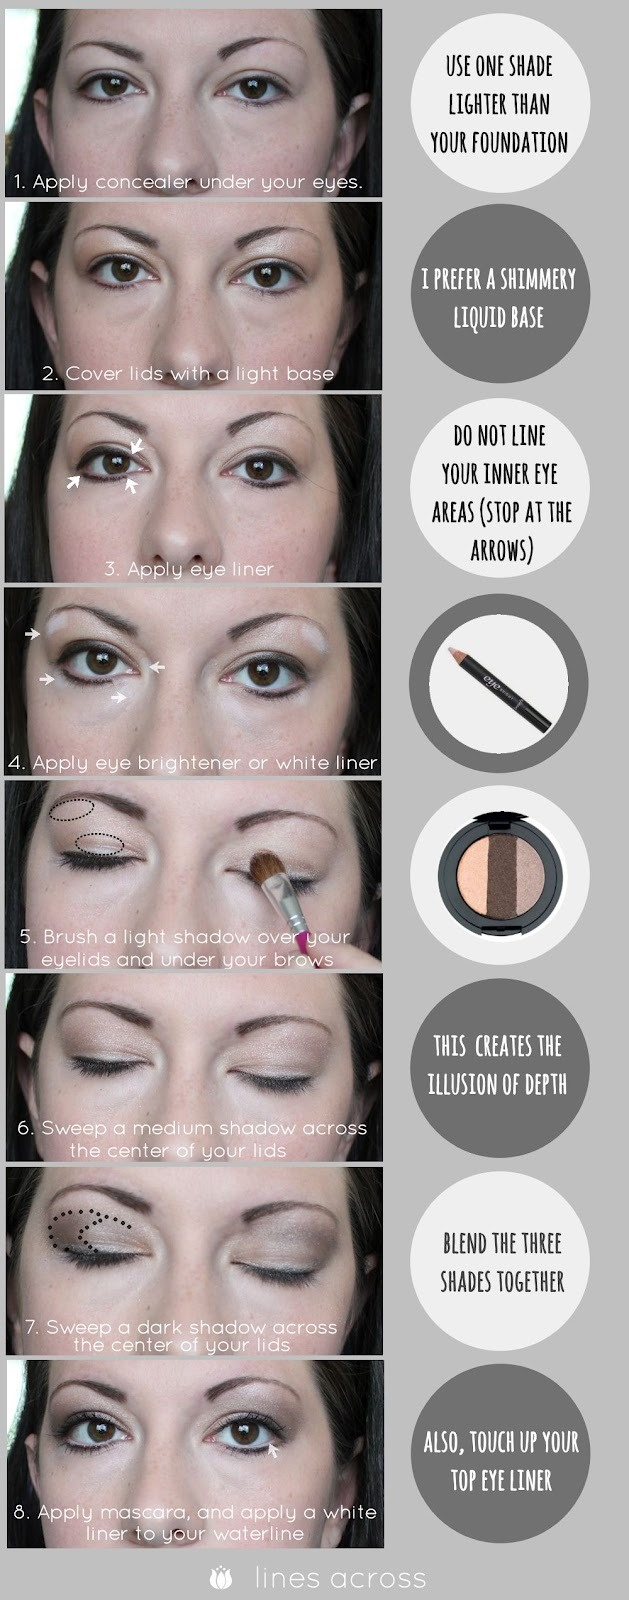 Double click to see entire image.  DO NOT COPY THIS TIP, PLEASE.